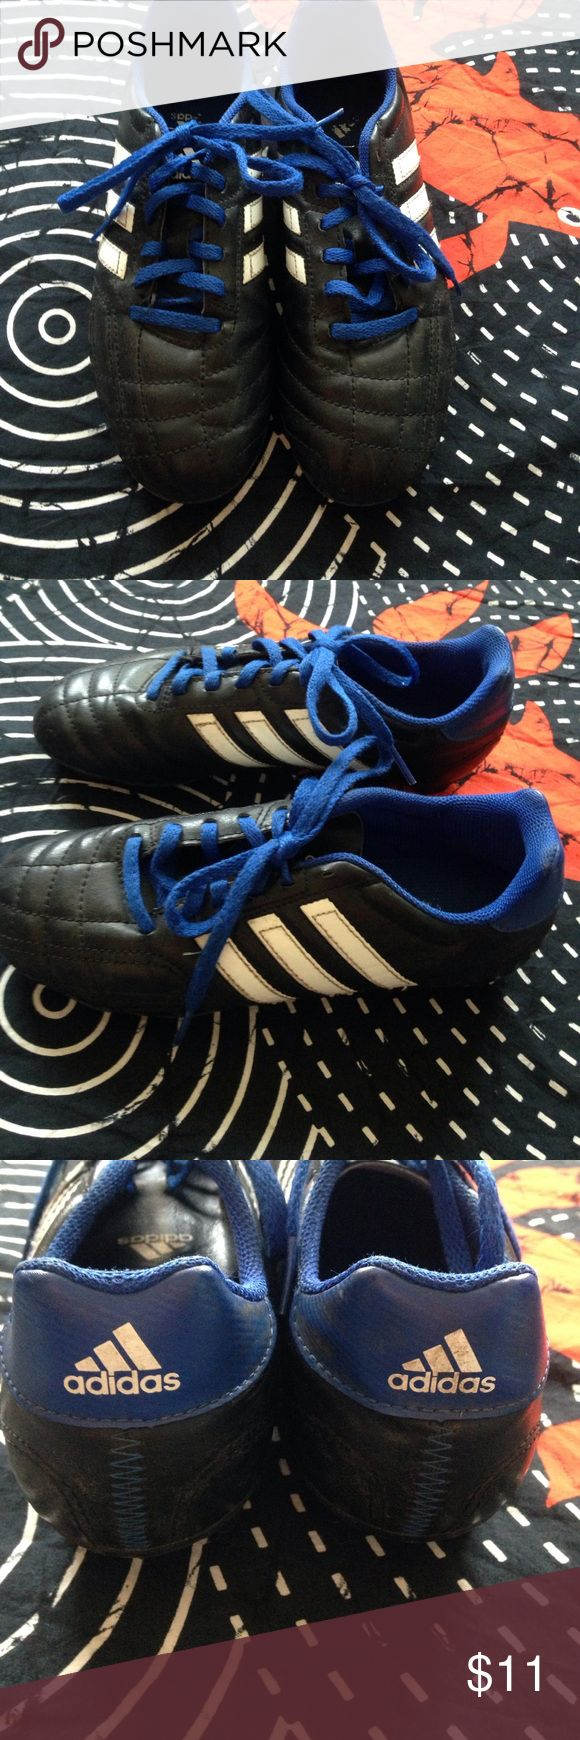 youth ADIDAS turf soccer cleat Indestructible. Great starter pair. Excellent used condition. Adidas Shoes